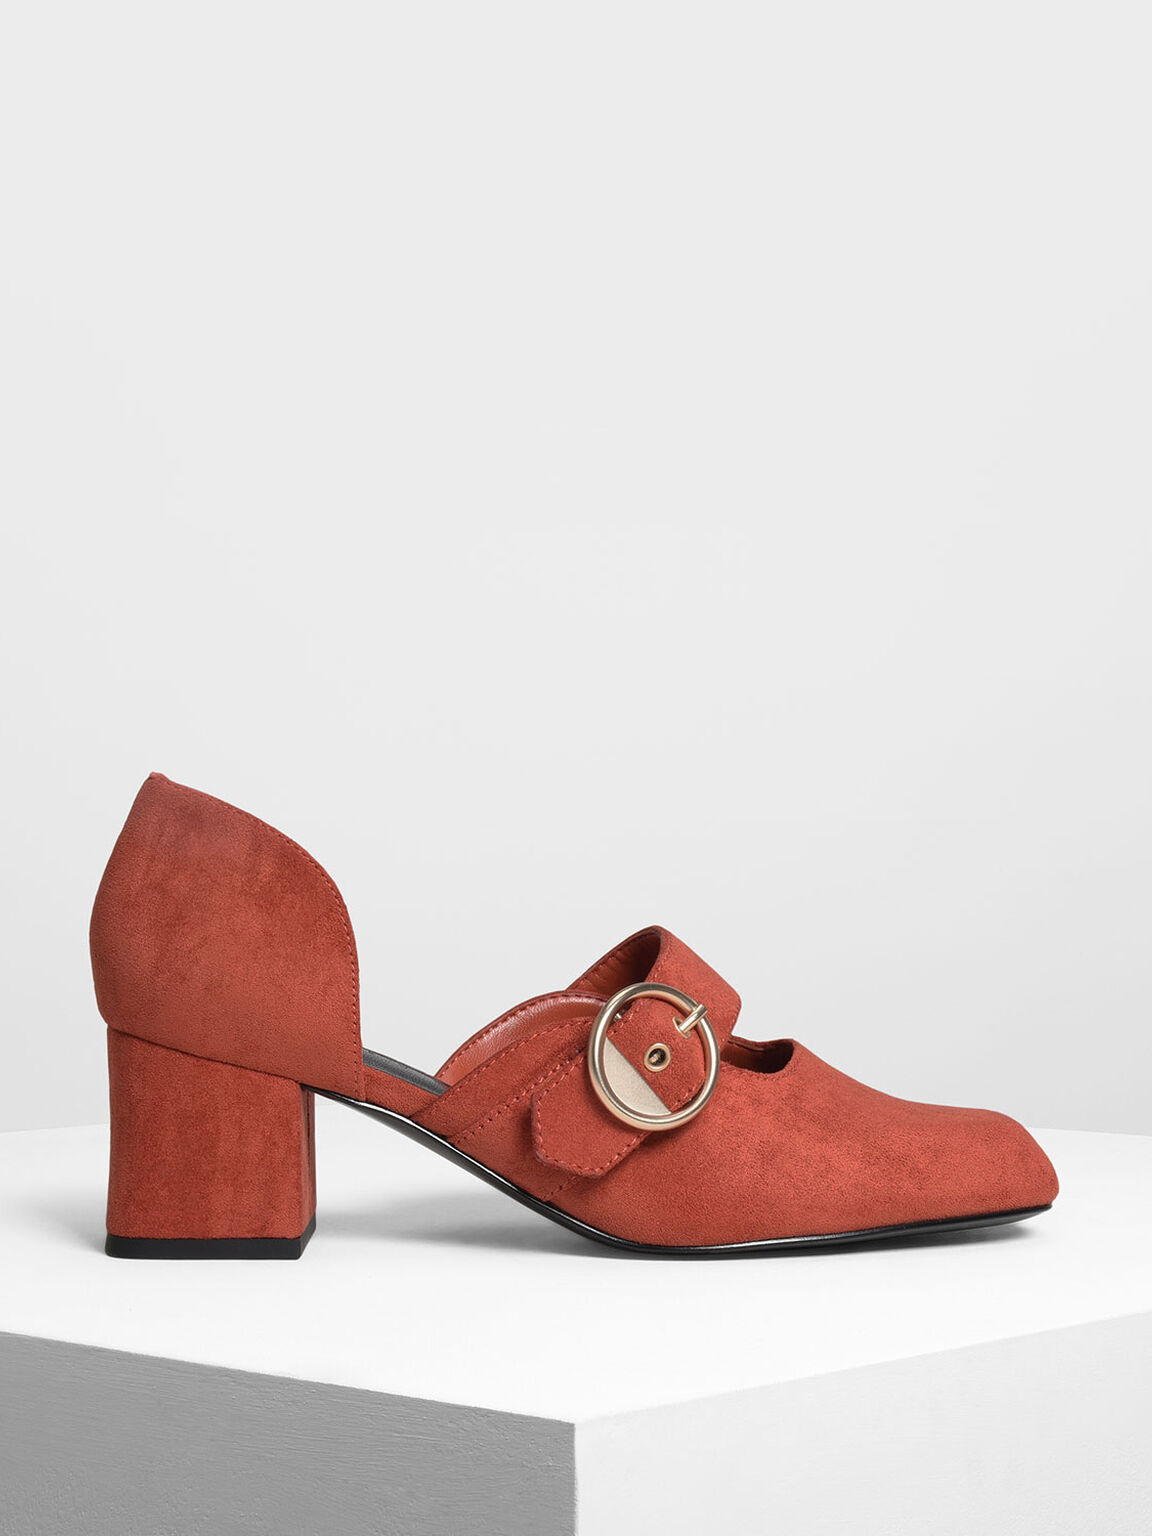 Oversized Gold Buckle Mary Janes, Orange, hi-res